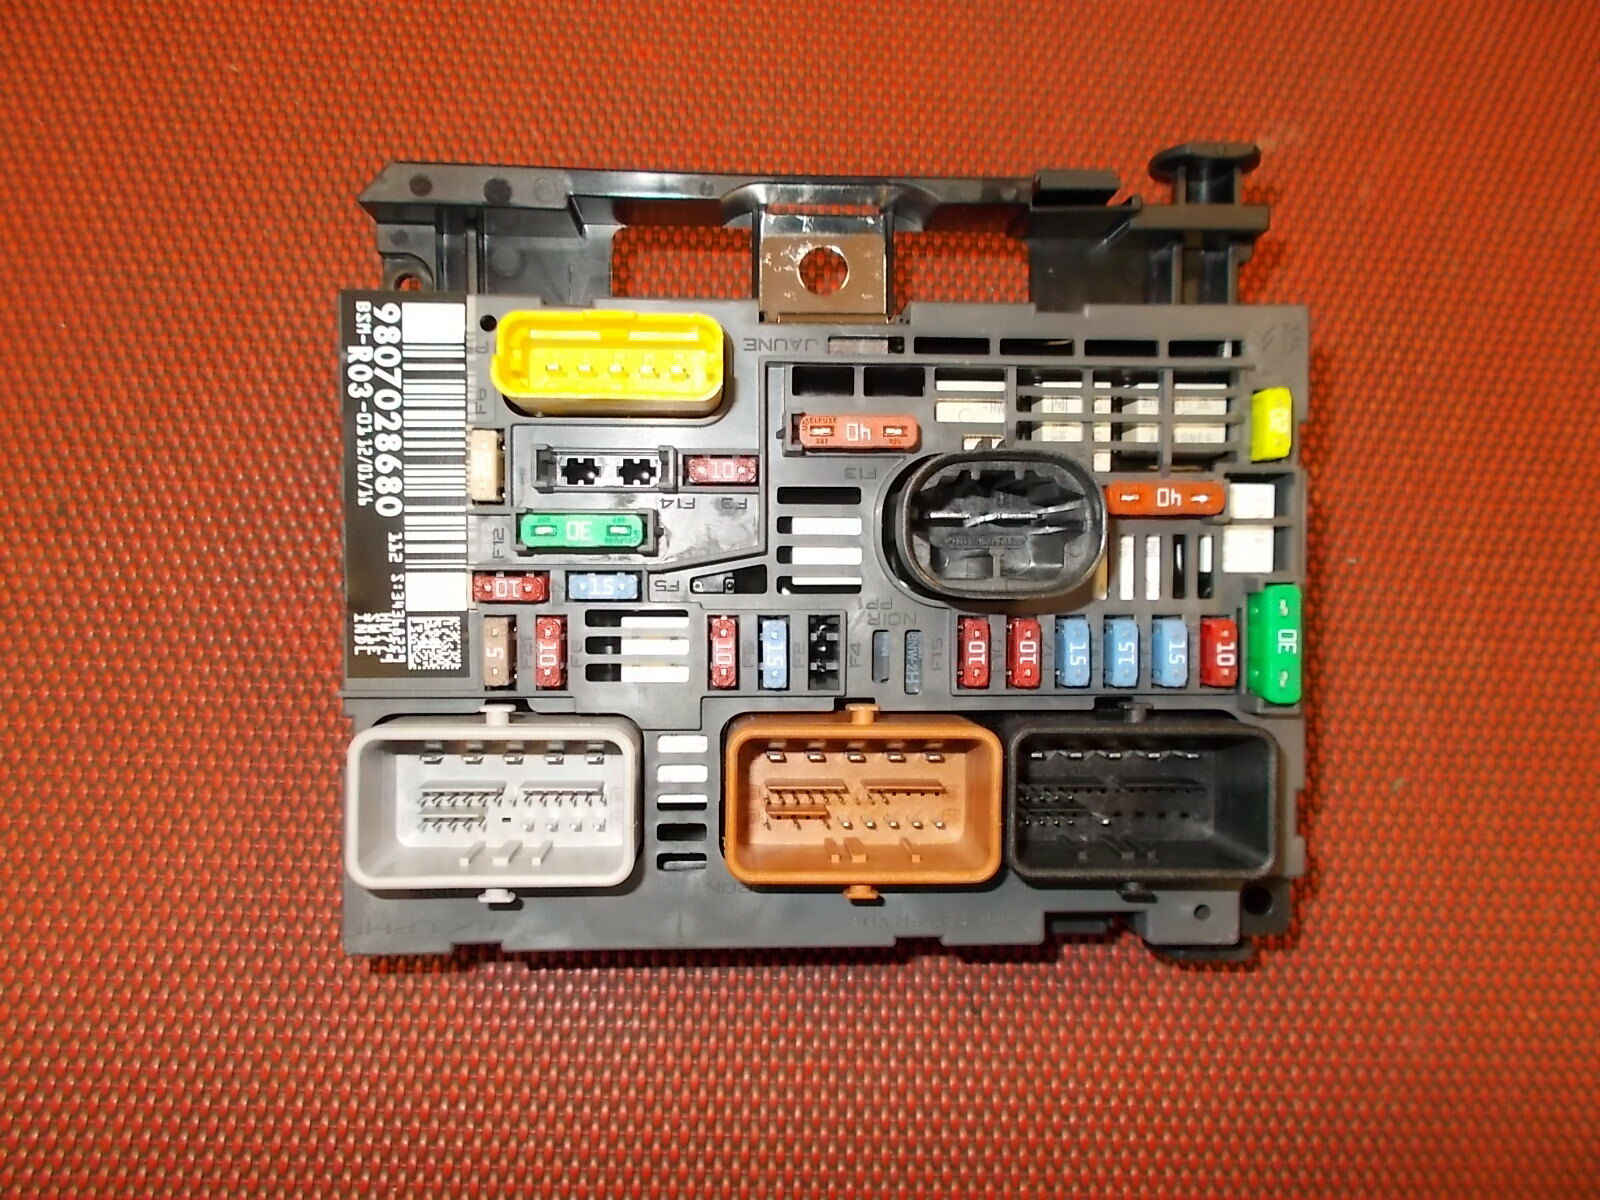 Fuse Box On A Peugeot Expert Wiring Library Genuine Mk3 Under Bonnet 9807028780 1 Sur 2